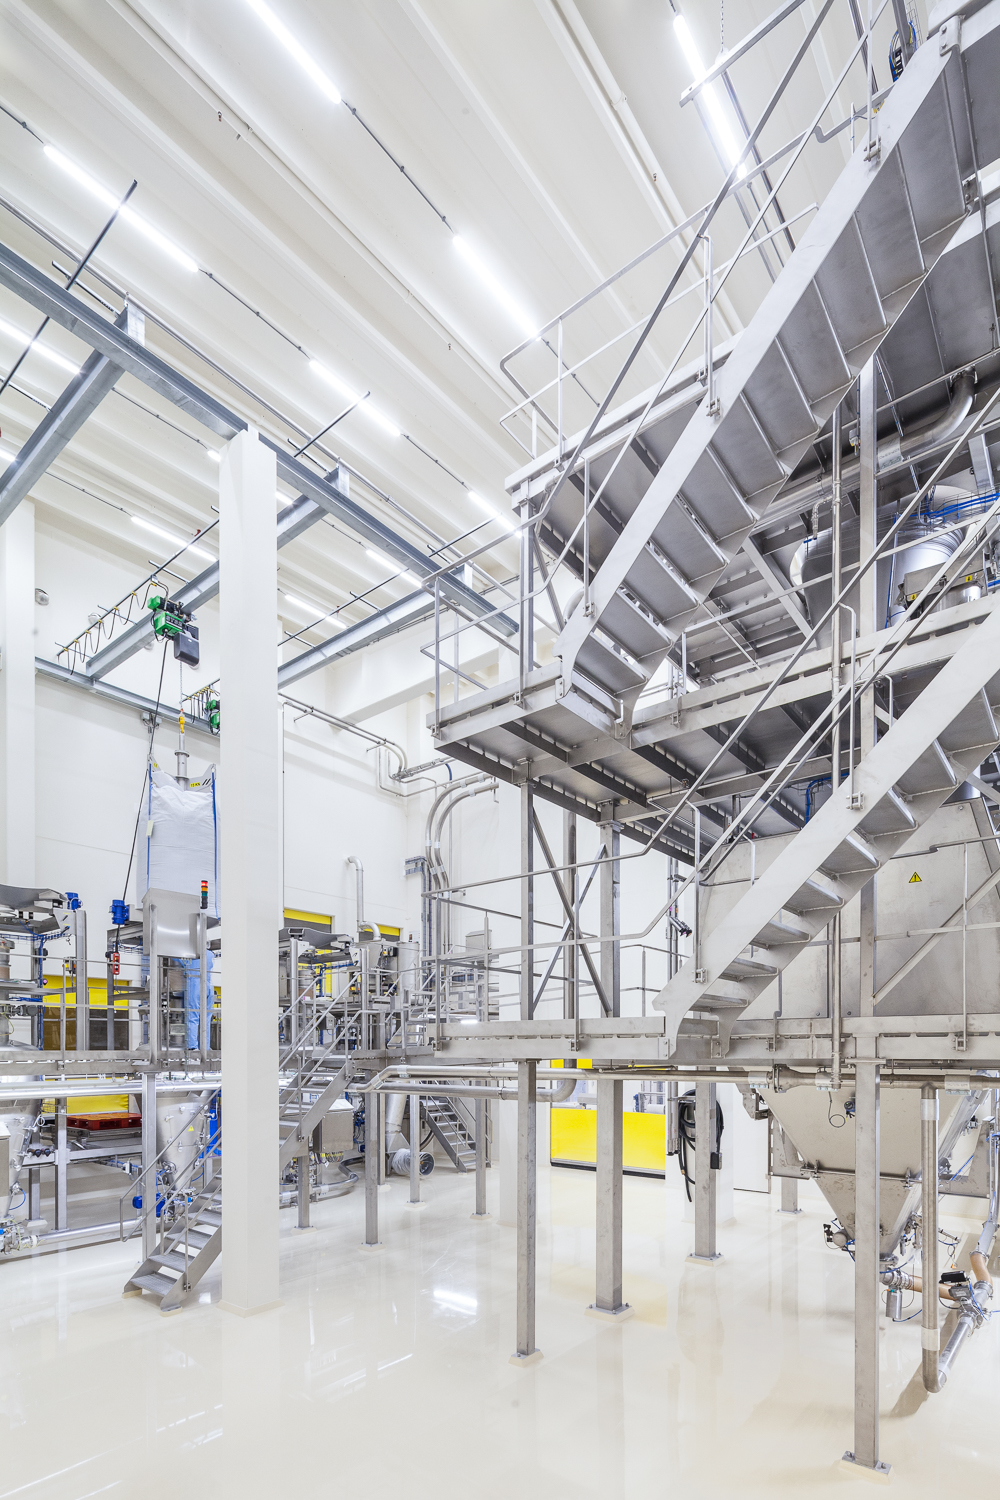 Industrial interior photography in a cleanroom environment a foodprocessing plant in Zwolle.